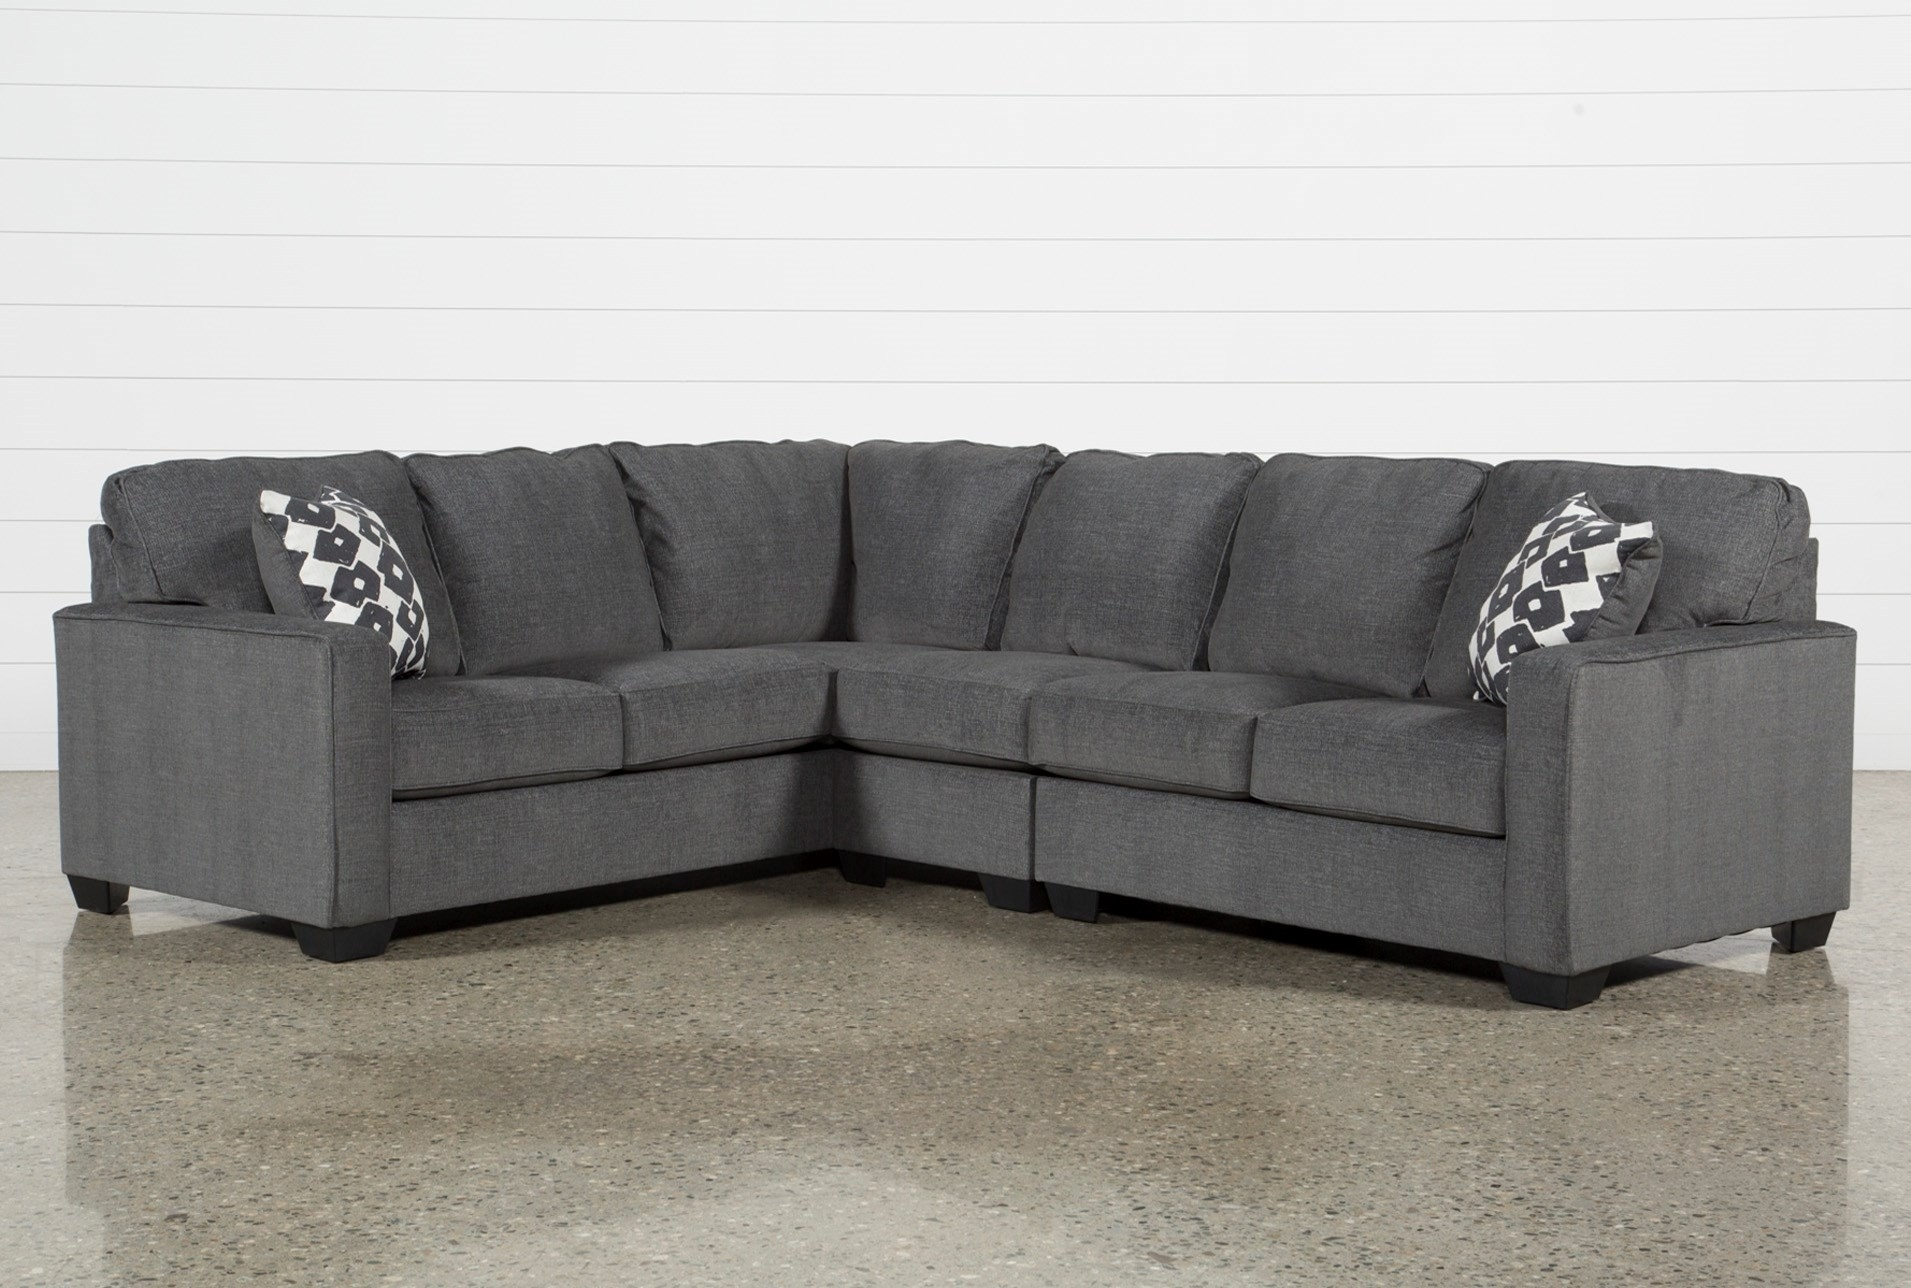 Raf Sectional Meyer 3 Piece W Chaise Living Spaces 87980 2 Jpg 1911 Regarding Meyer 3 Piece Sectionals With Laf Chaise (Image 19 of 25)